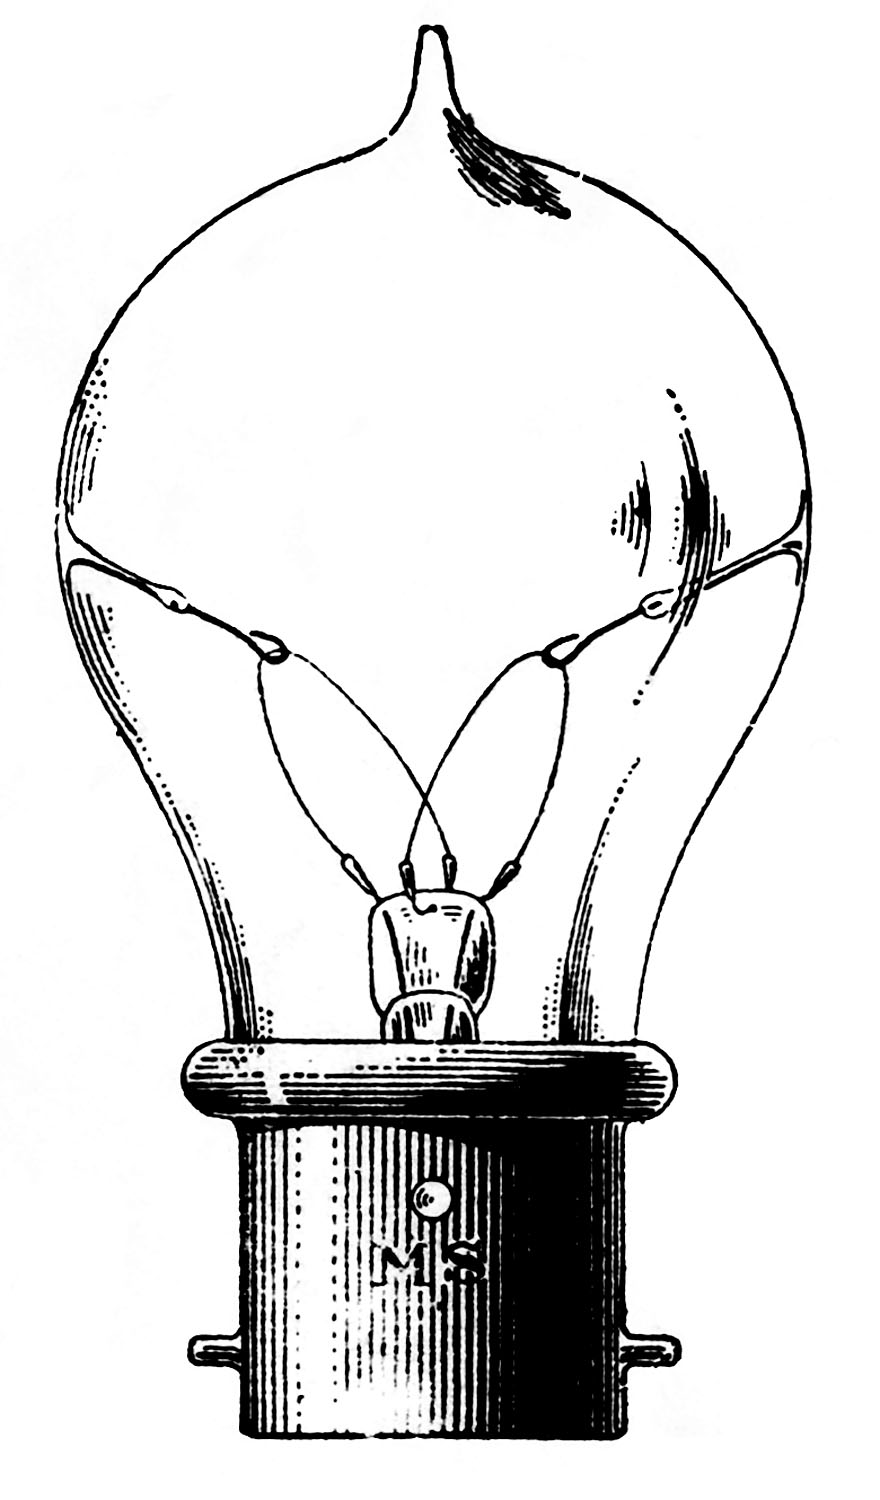 Vintage Clip Art - Old Fashioned Light Bulb - The Graphics Fairy for Black Light Bulb Clip Art  54lyp